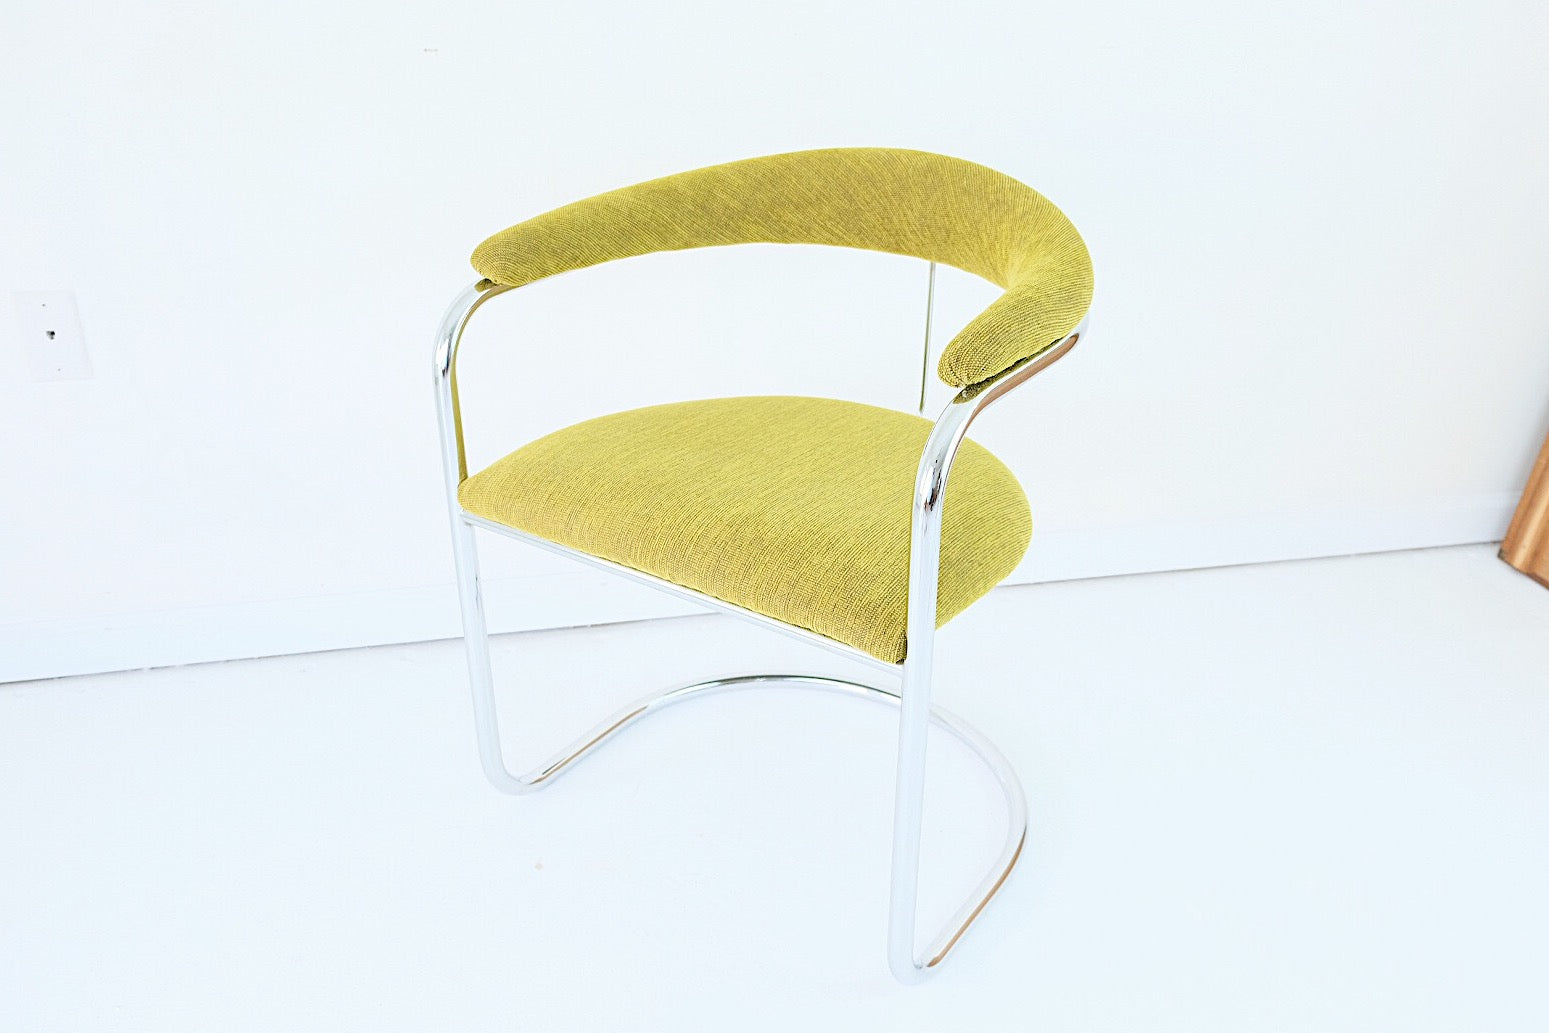 Anton Lorenz for Thonet Bent Chrome Cantilever Chair Chartreuse Tweed Upholstery